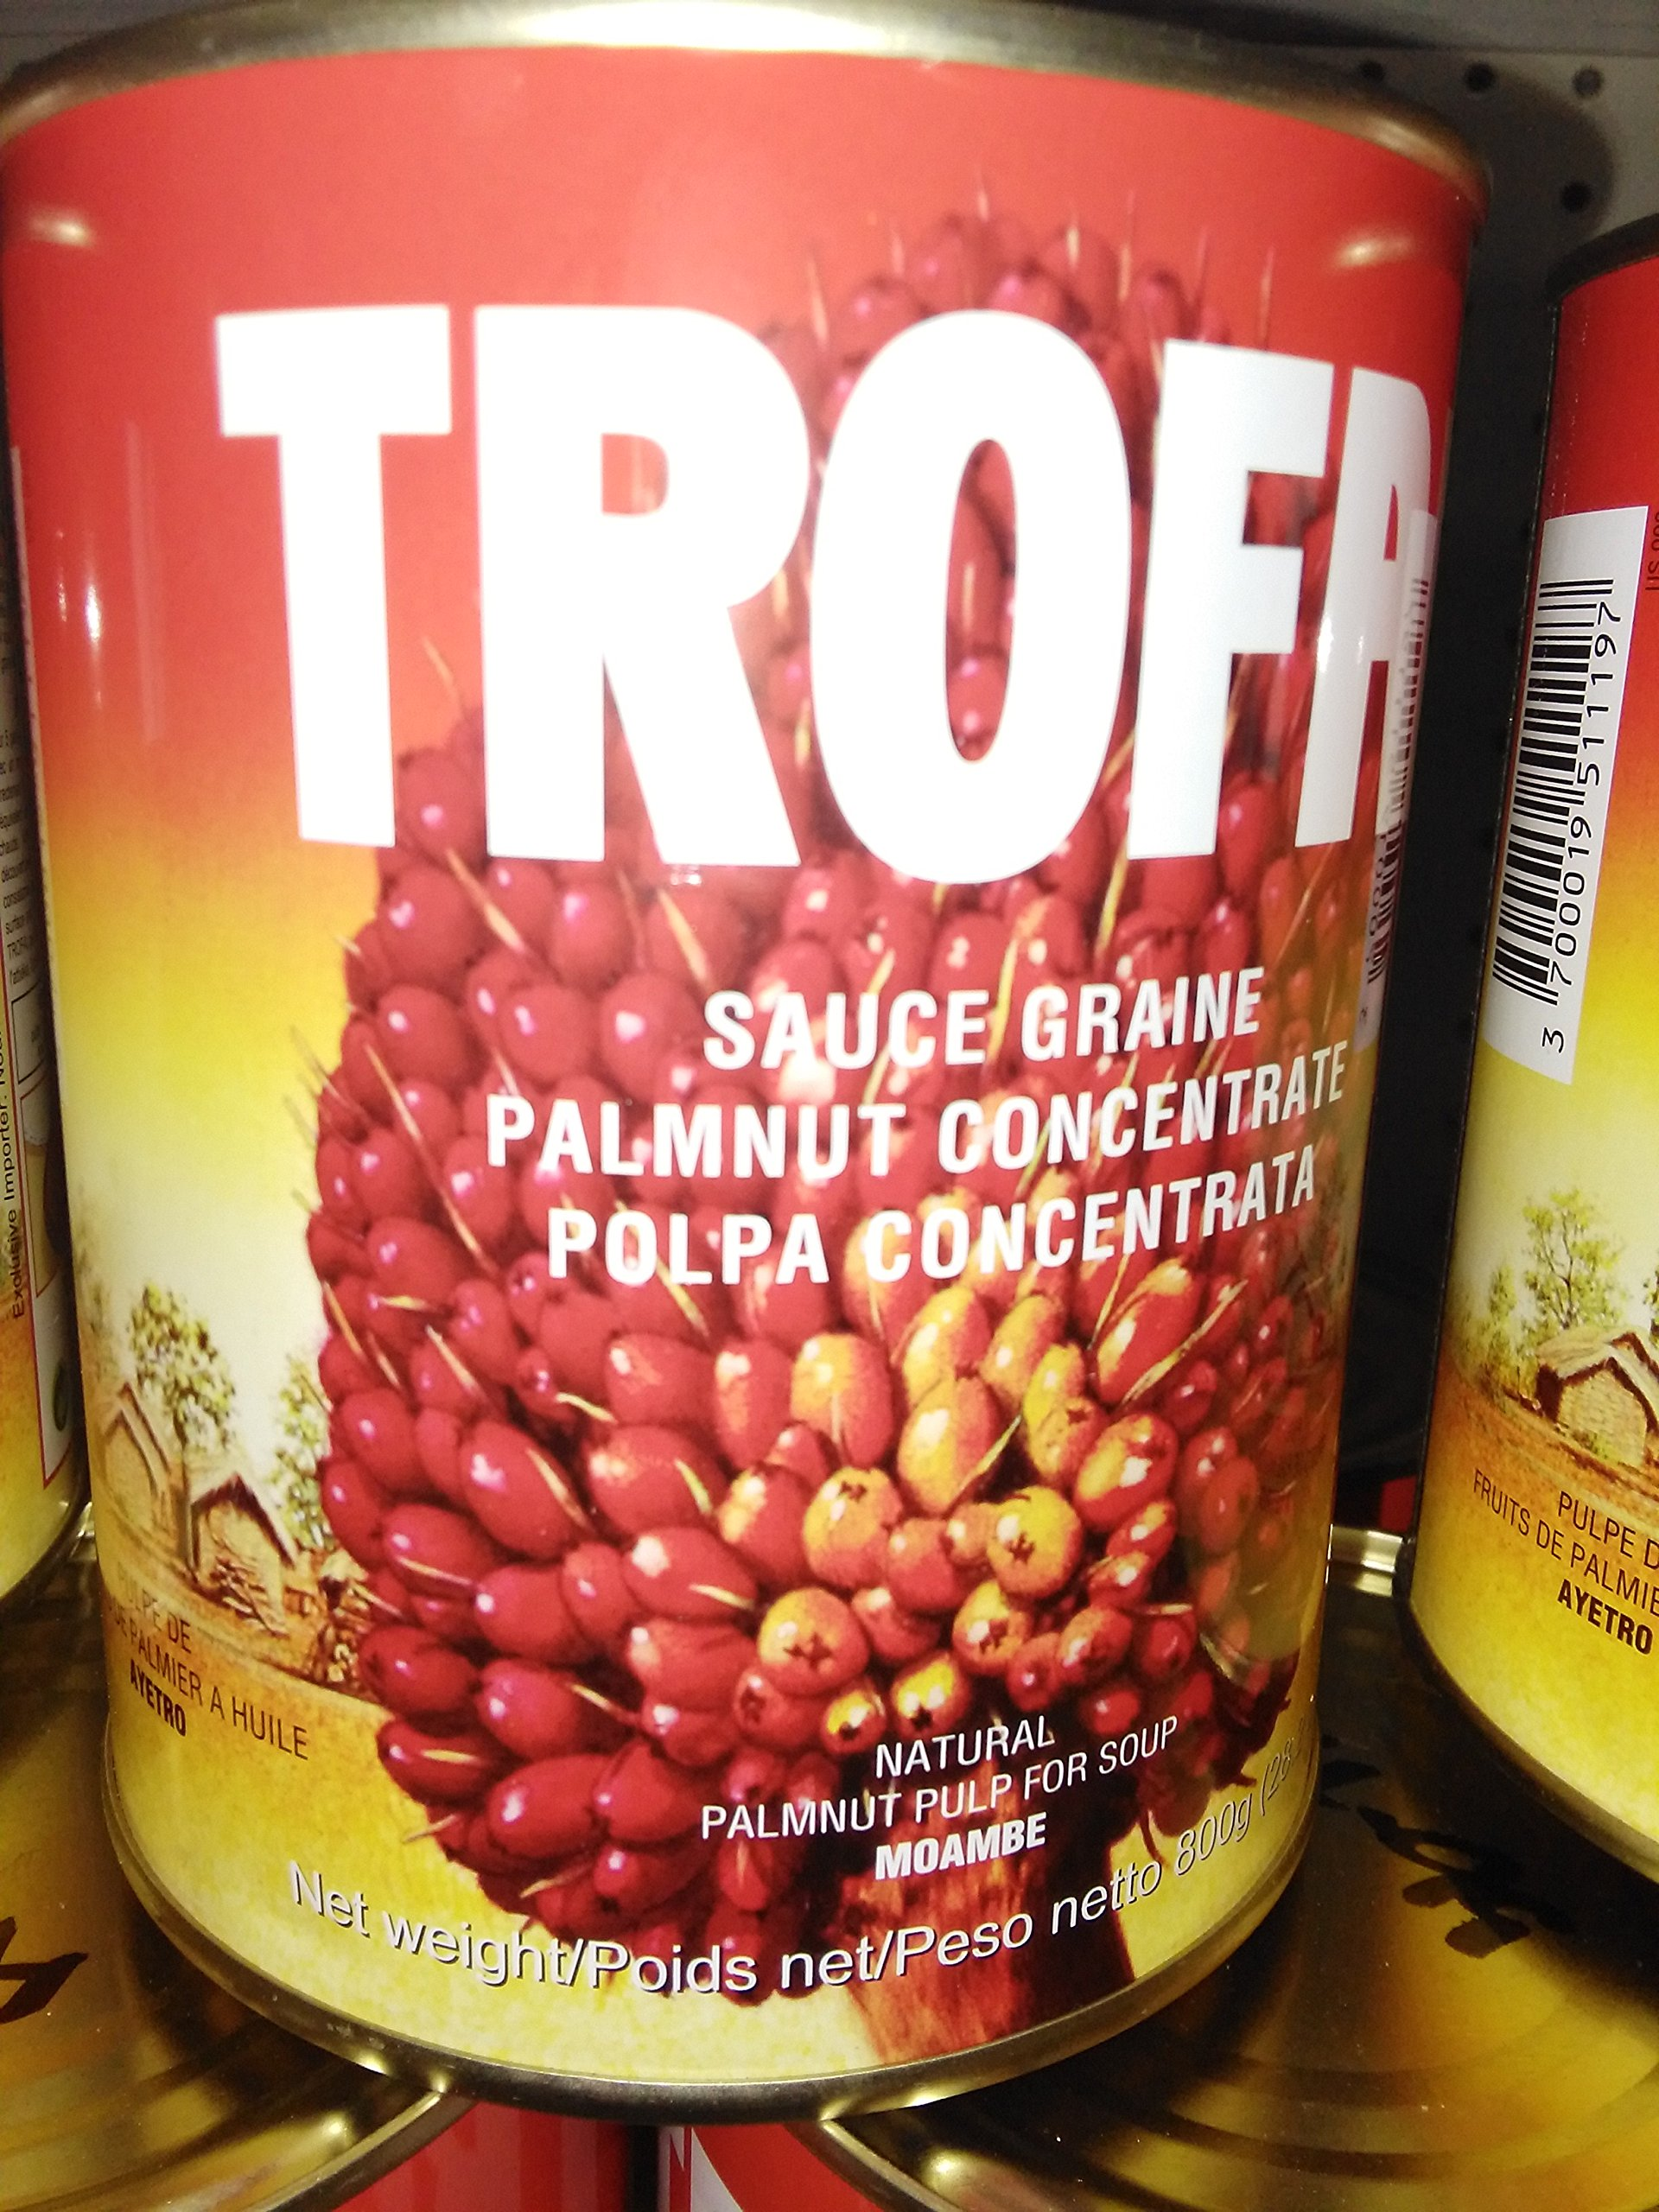 Trofai Palm nut Sauce Concentrate - Pack of 4 by Trofai (Image #1)